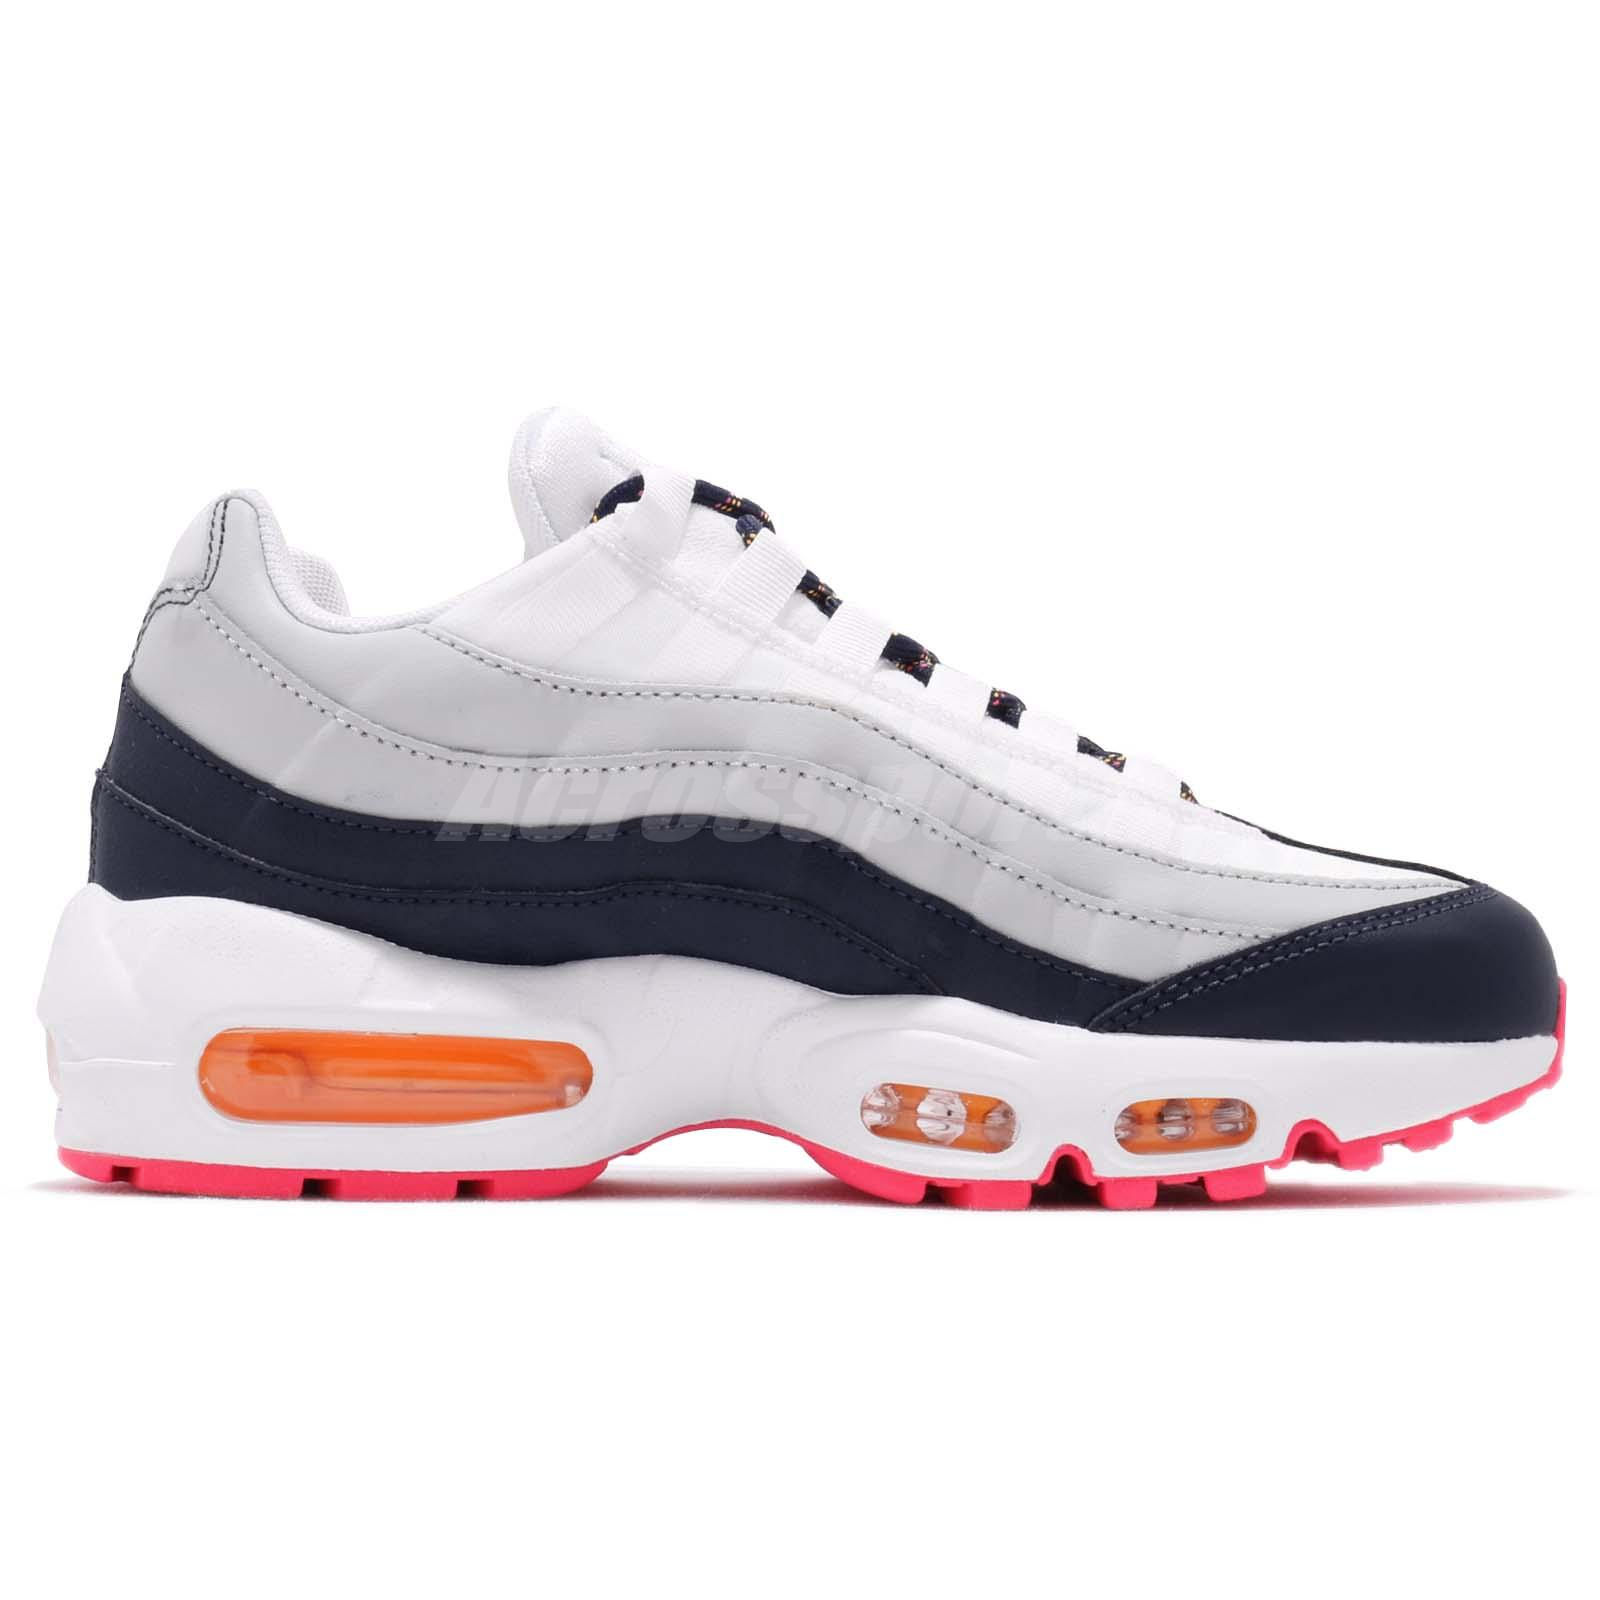 Nike Air Max 95 Premium Women's Shoe Philippines Midnight Navy Laser Orange Pure Platinum